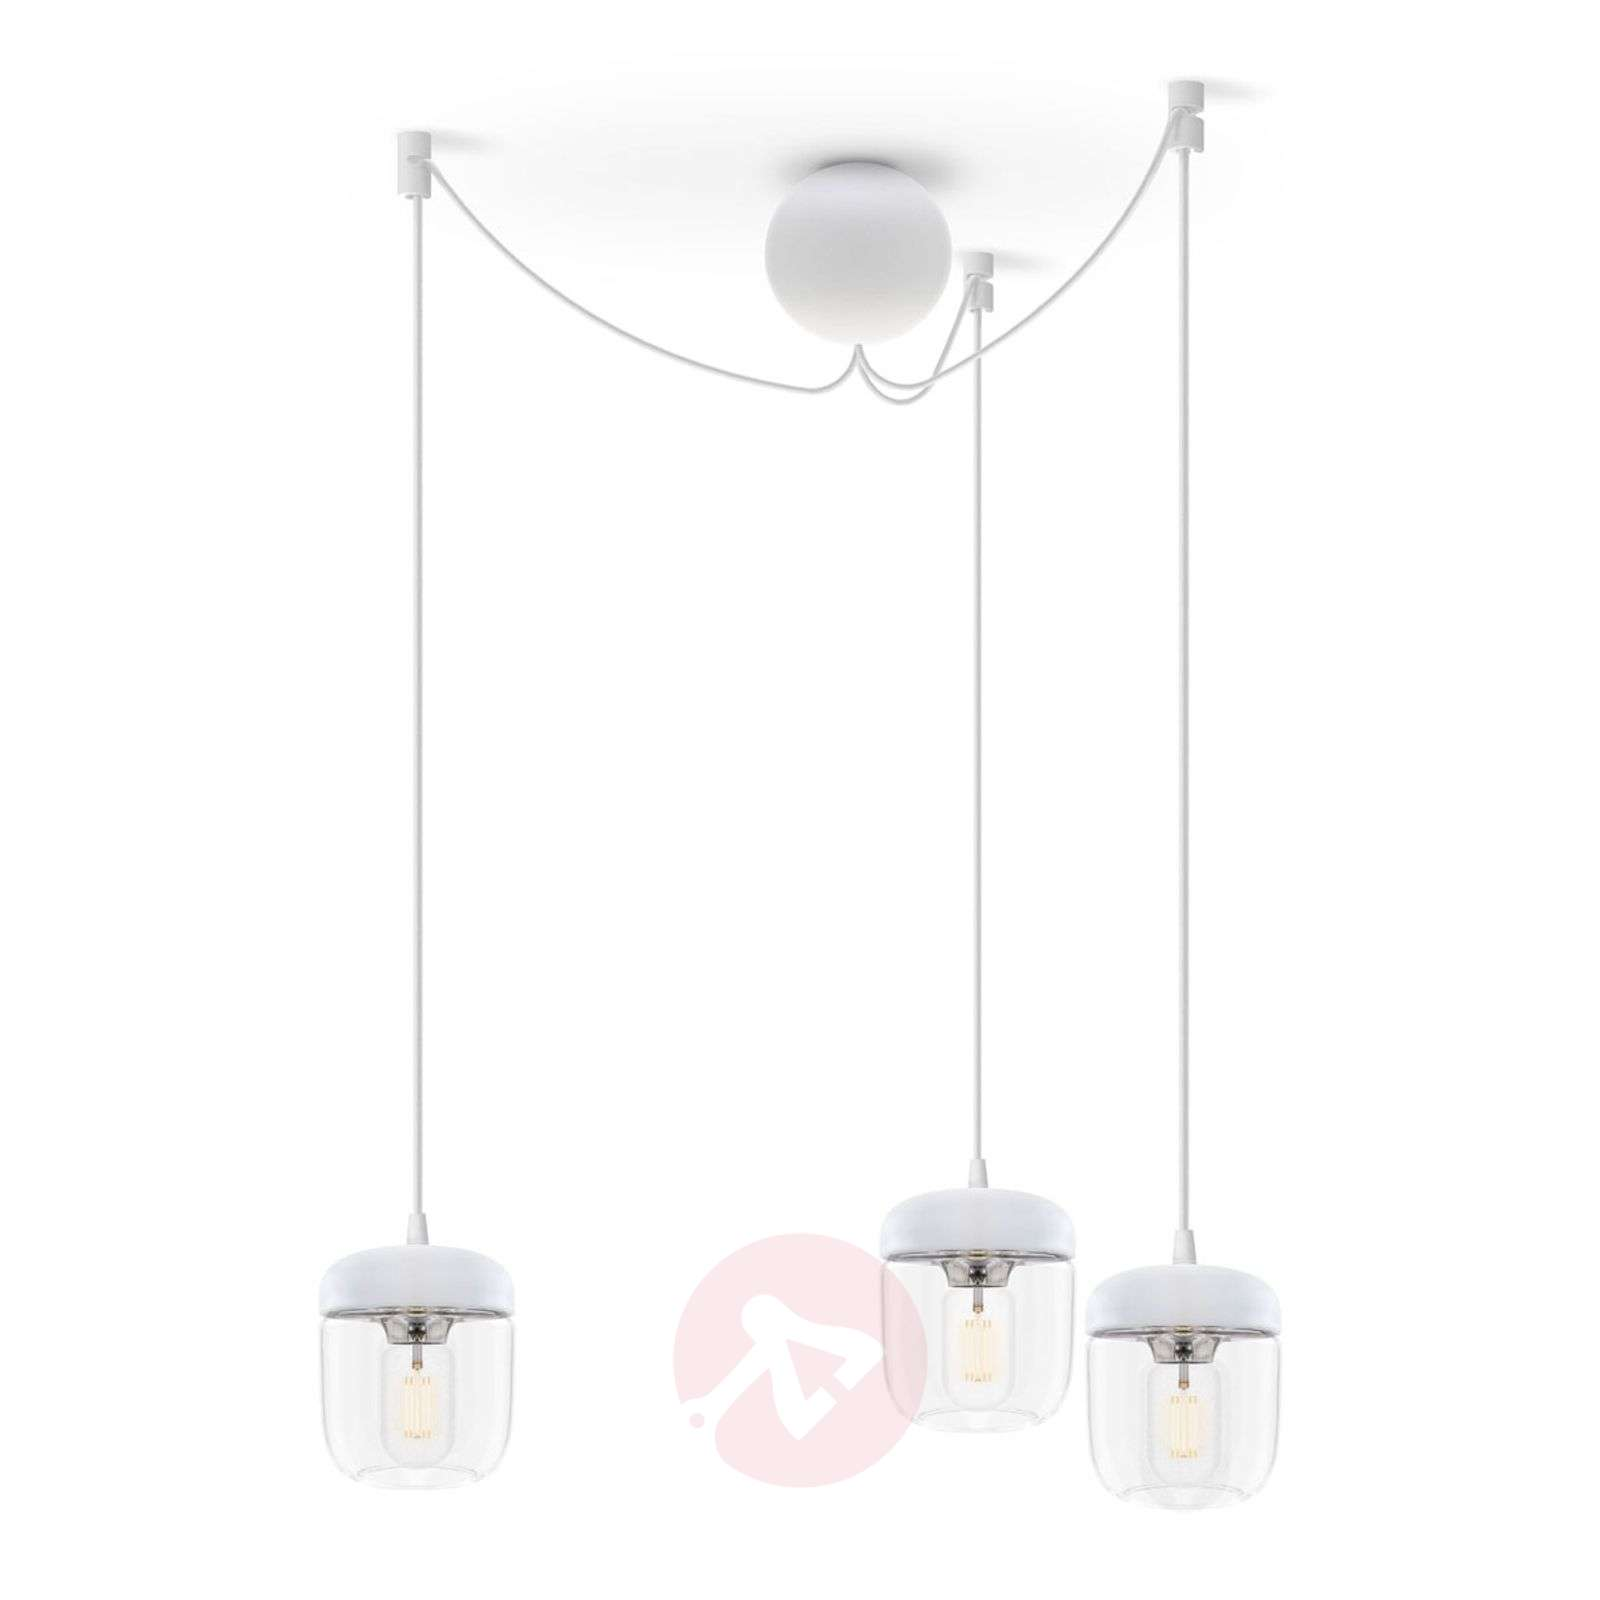 UMAGE Acorn hanging light three-bulb, white/steel-9521093-01